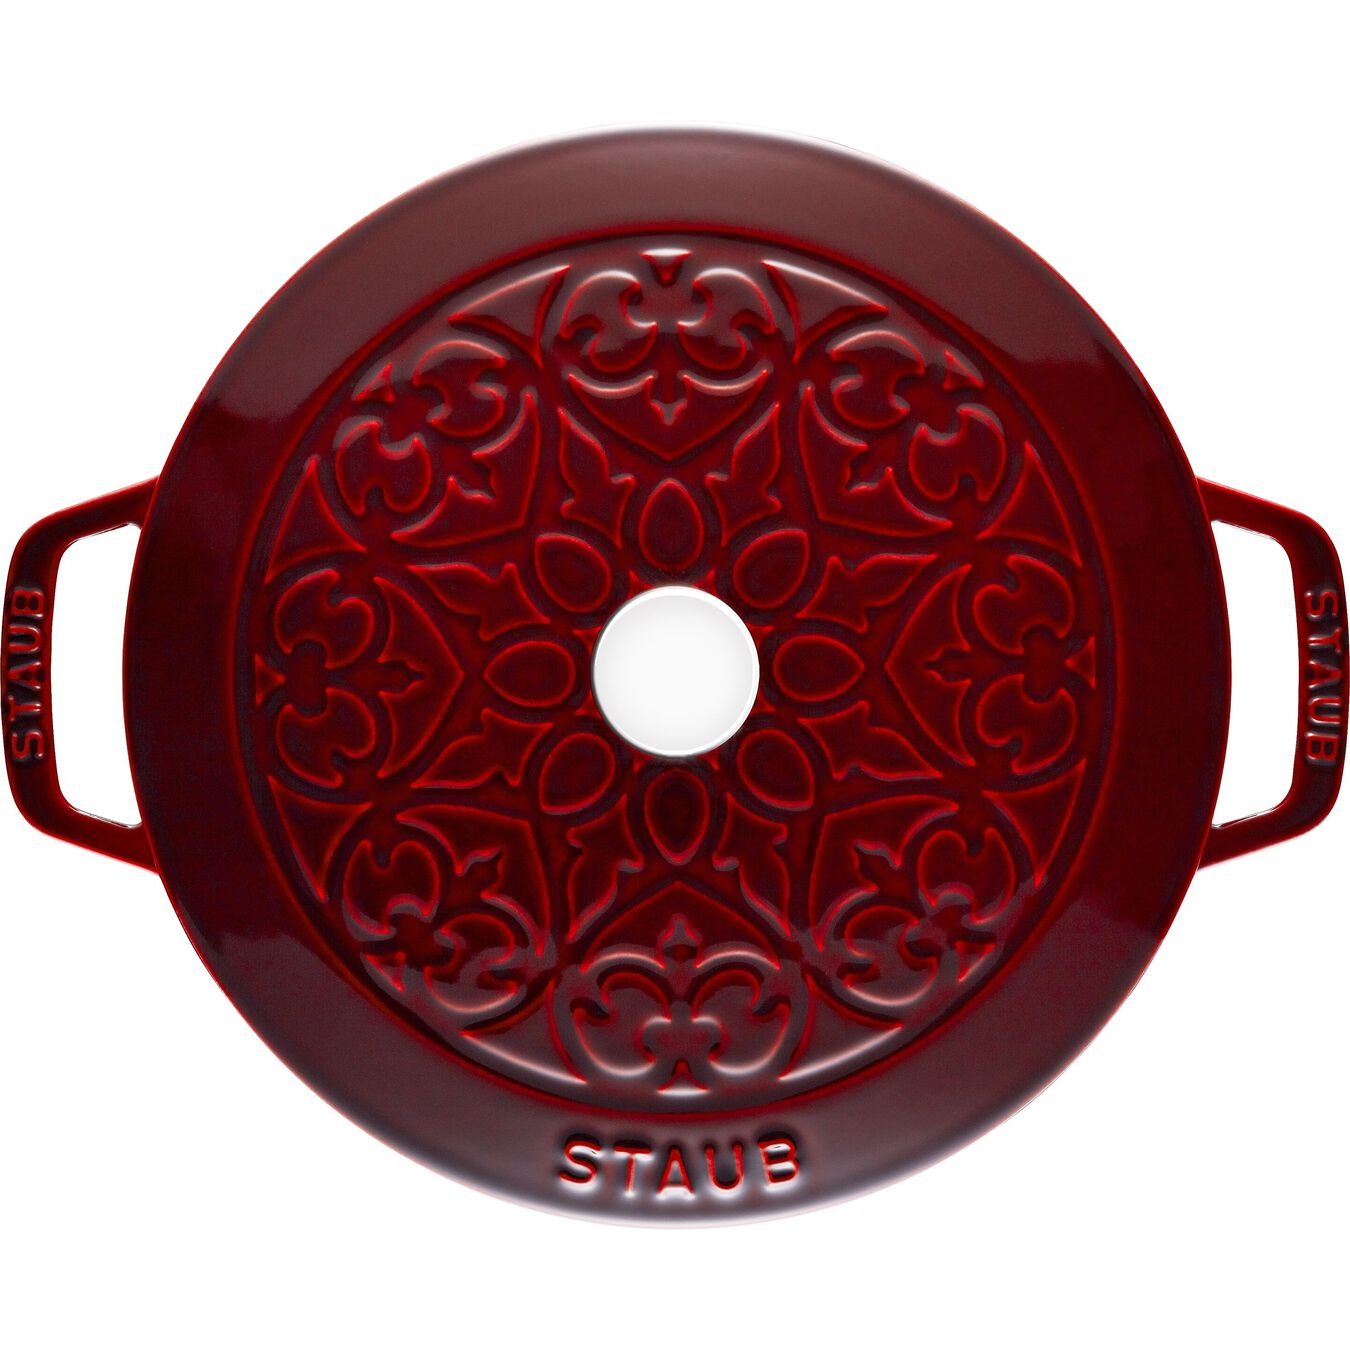 5-qt Essential French Oven with Lilly Lid - Visual Imperfections - Grenadine,,large 3